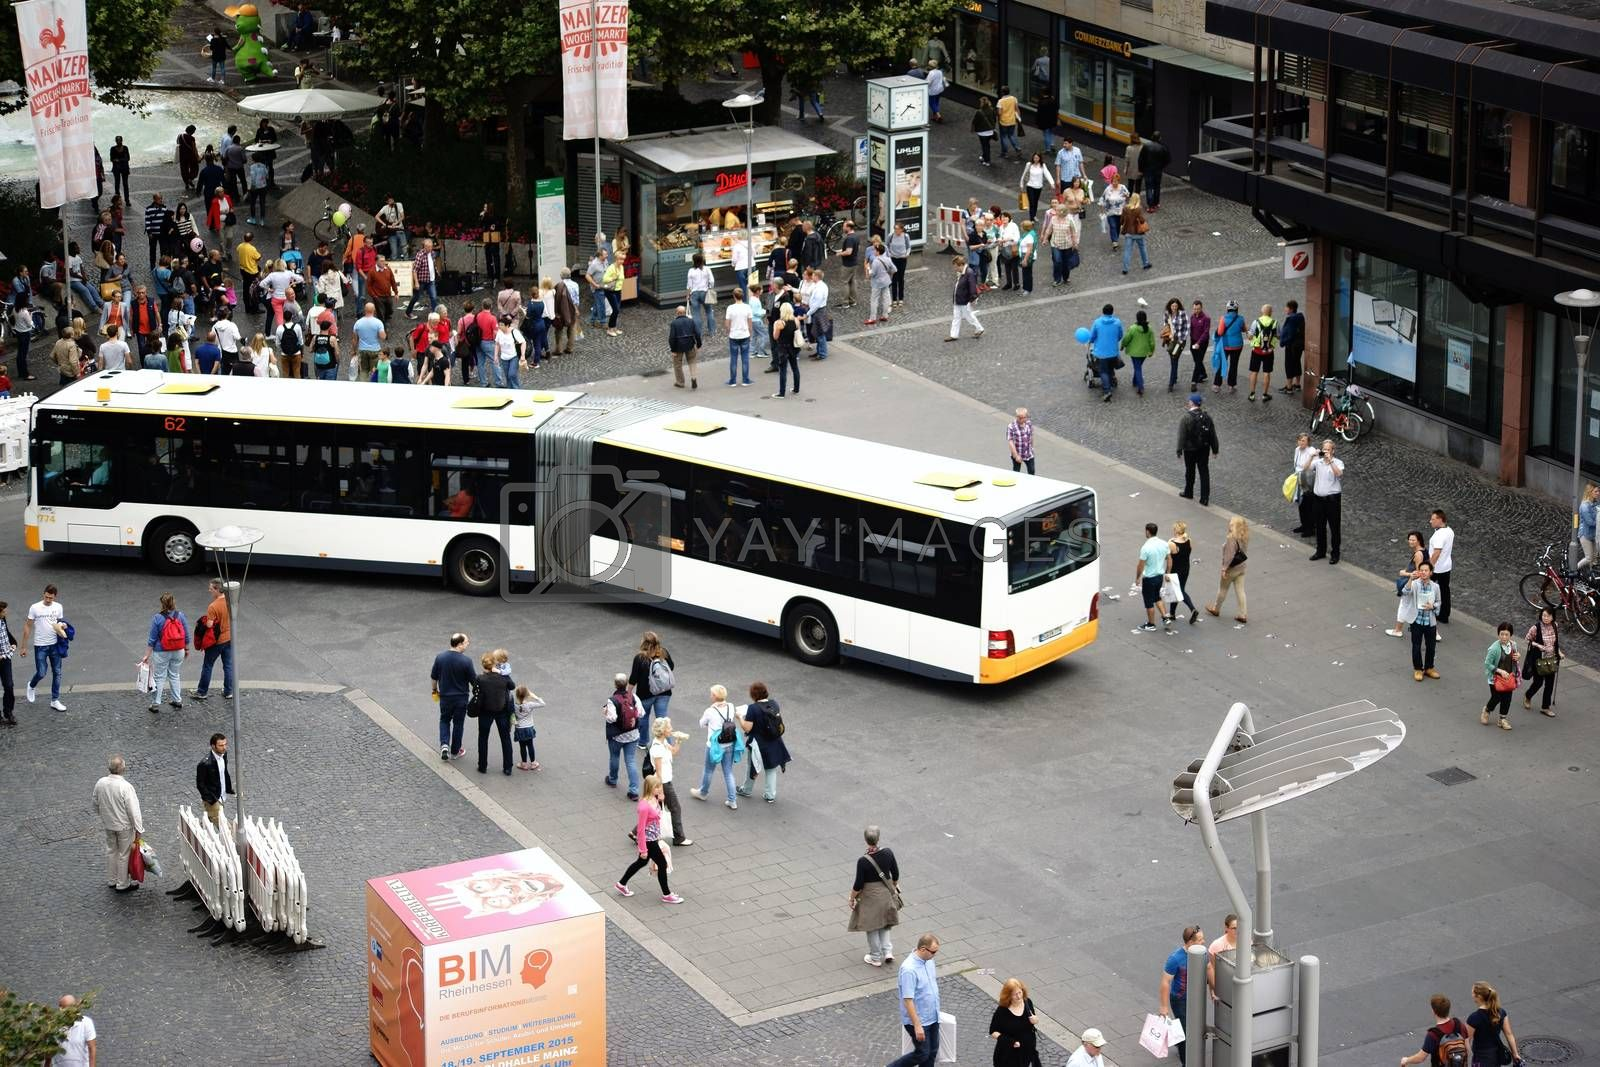 Mainz, Germany - September 11, 2015: Bus routes and groups of people on the Gutenberg square corner Schoeffer Street on September 11, 2015 in Mainz.